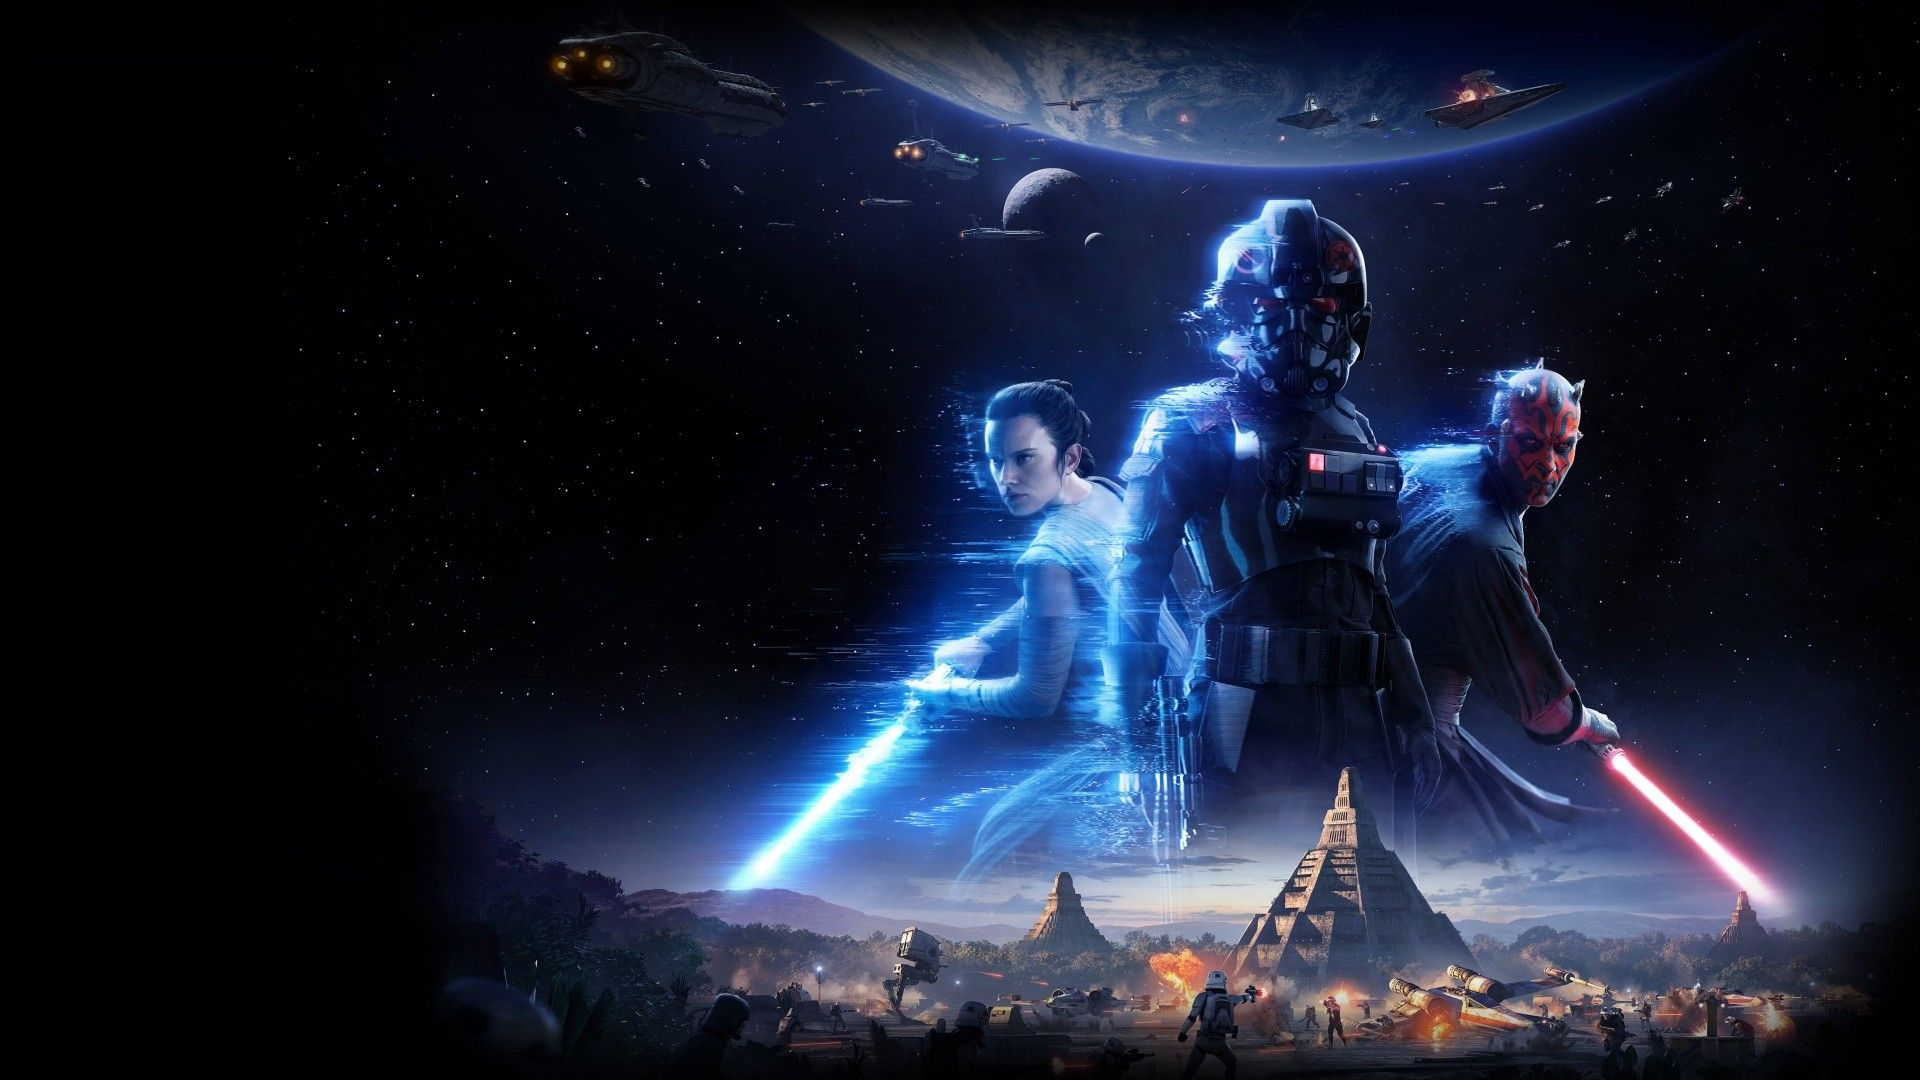 Star Wars Battlefront 2 Hd Wallpapers Theme Star Wars Wallpaper Star Wars Games Star Wars Battlefront